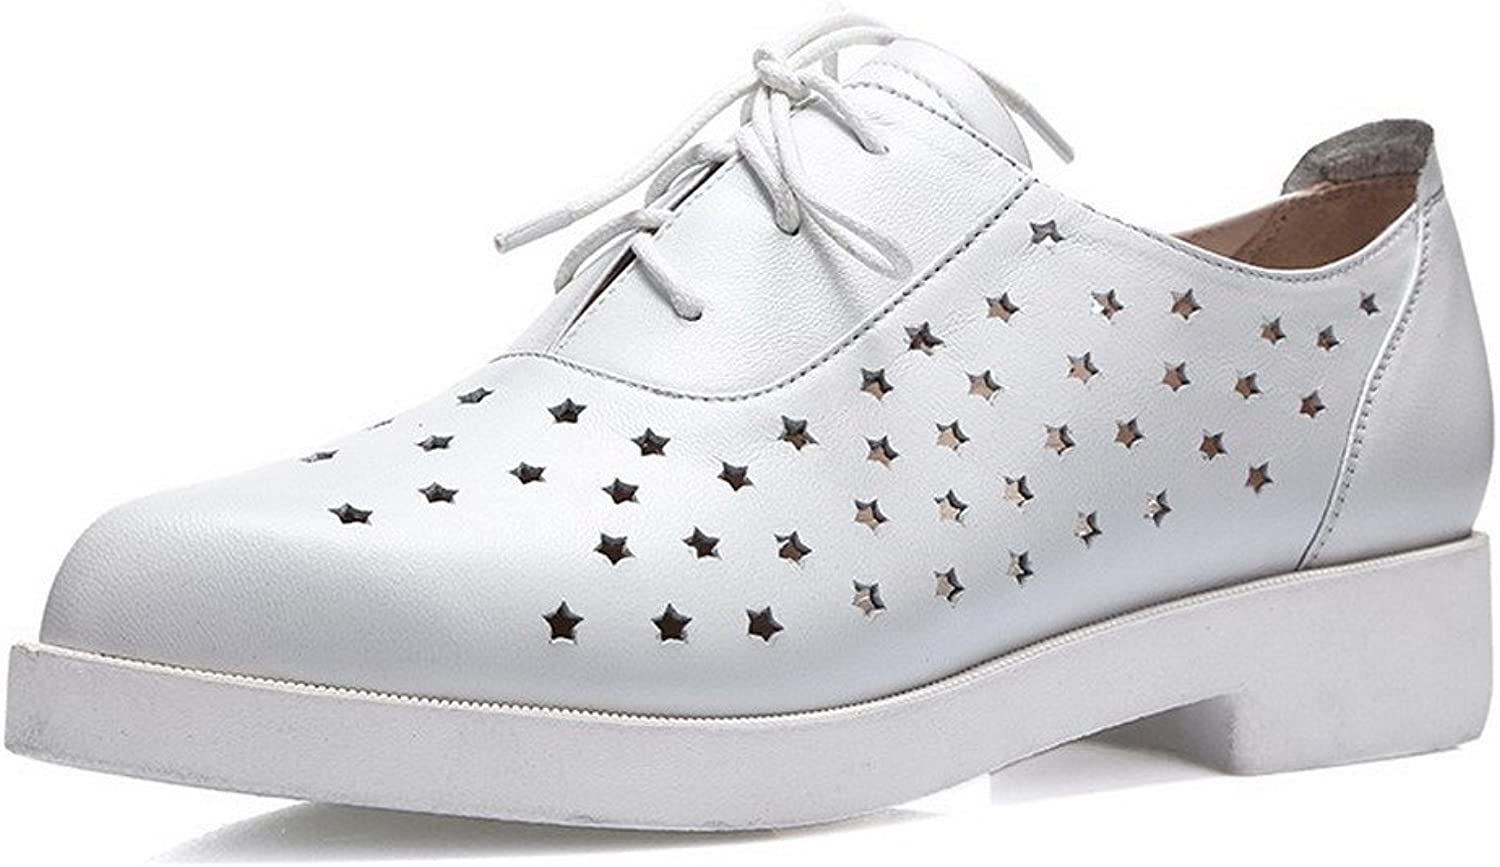 AllhqFashion Women's Round Closed Toe Cow Leather Low Heels Solid Pumps with Stars Ornament